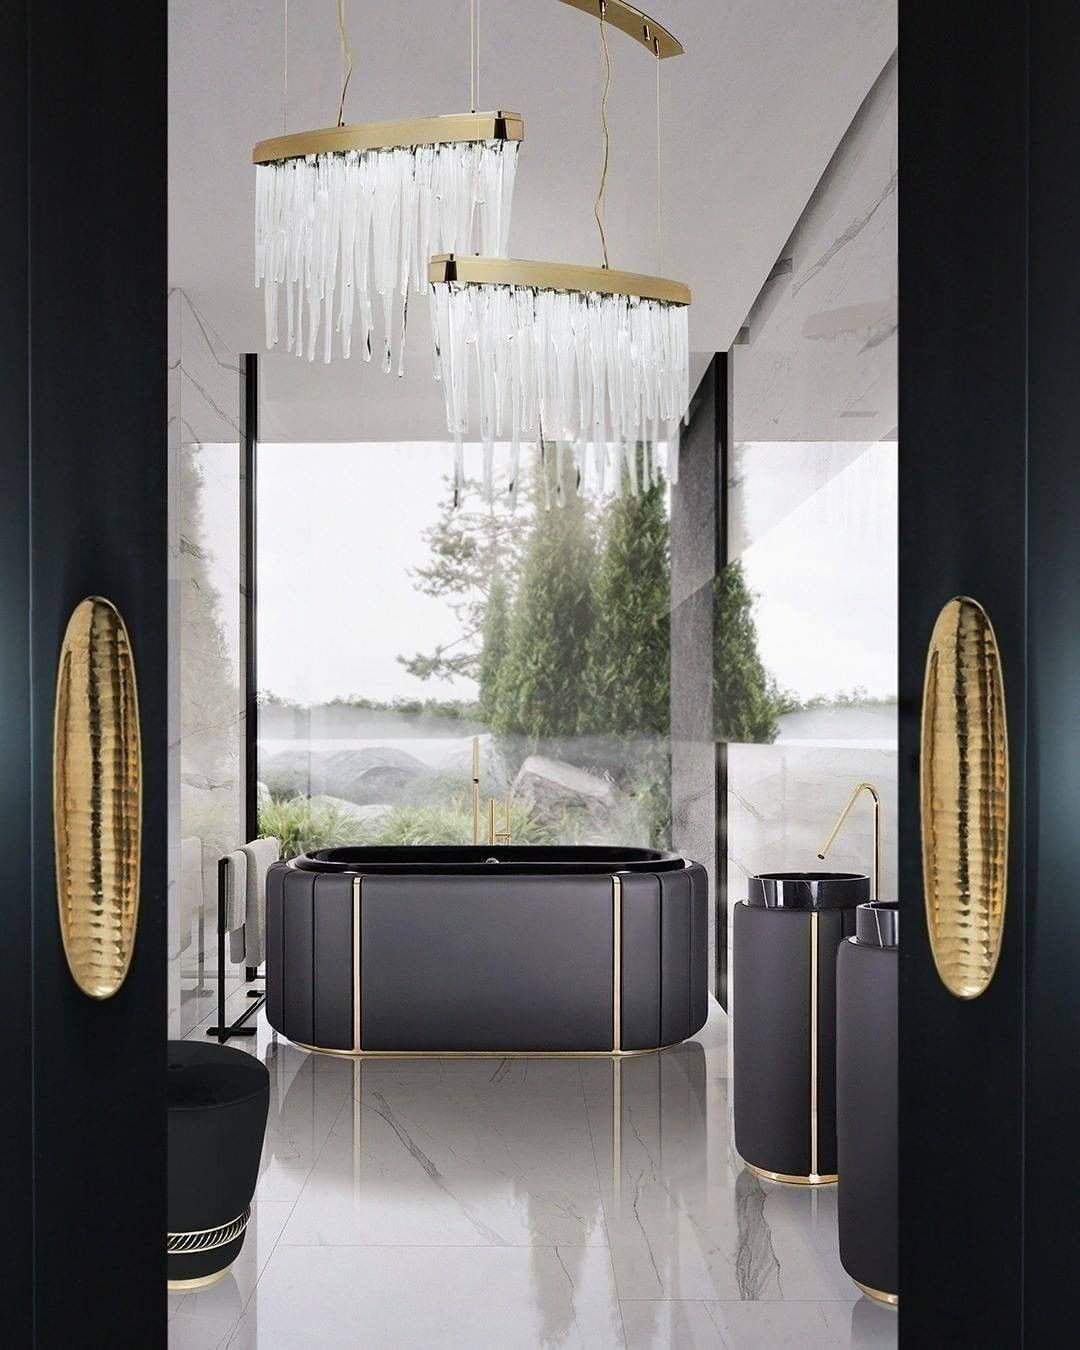 hardware trends Hardware Trends To Uplift Any Room Décor 131536680 232538251728467 5744056326647106285 n